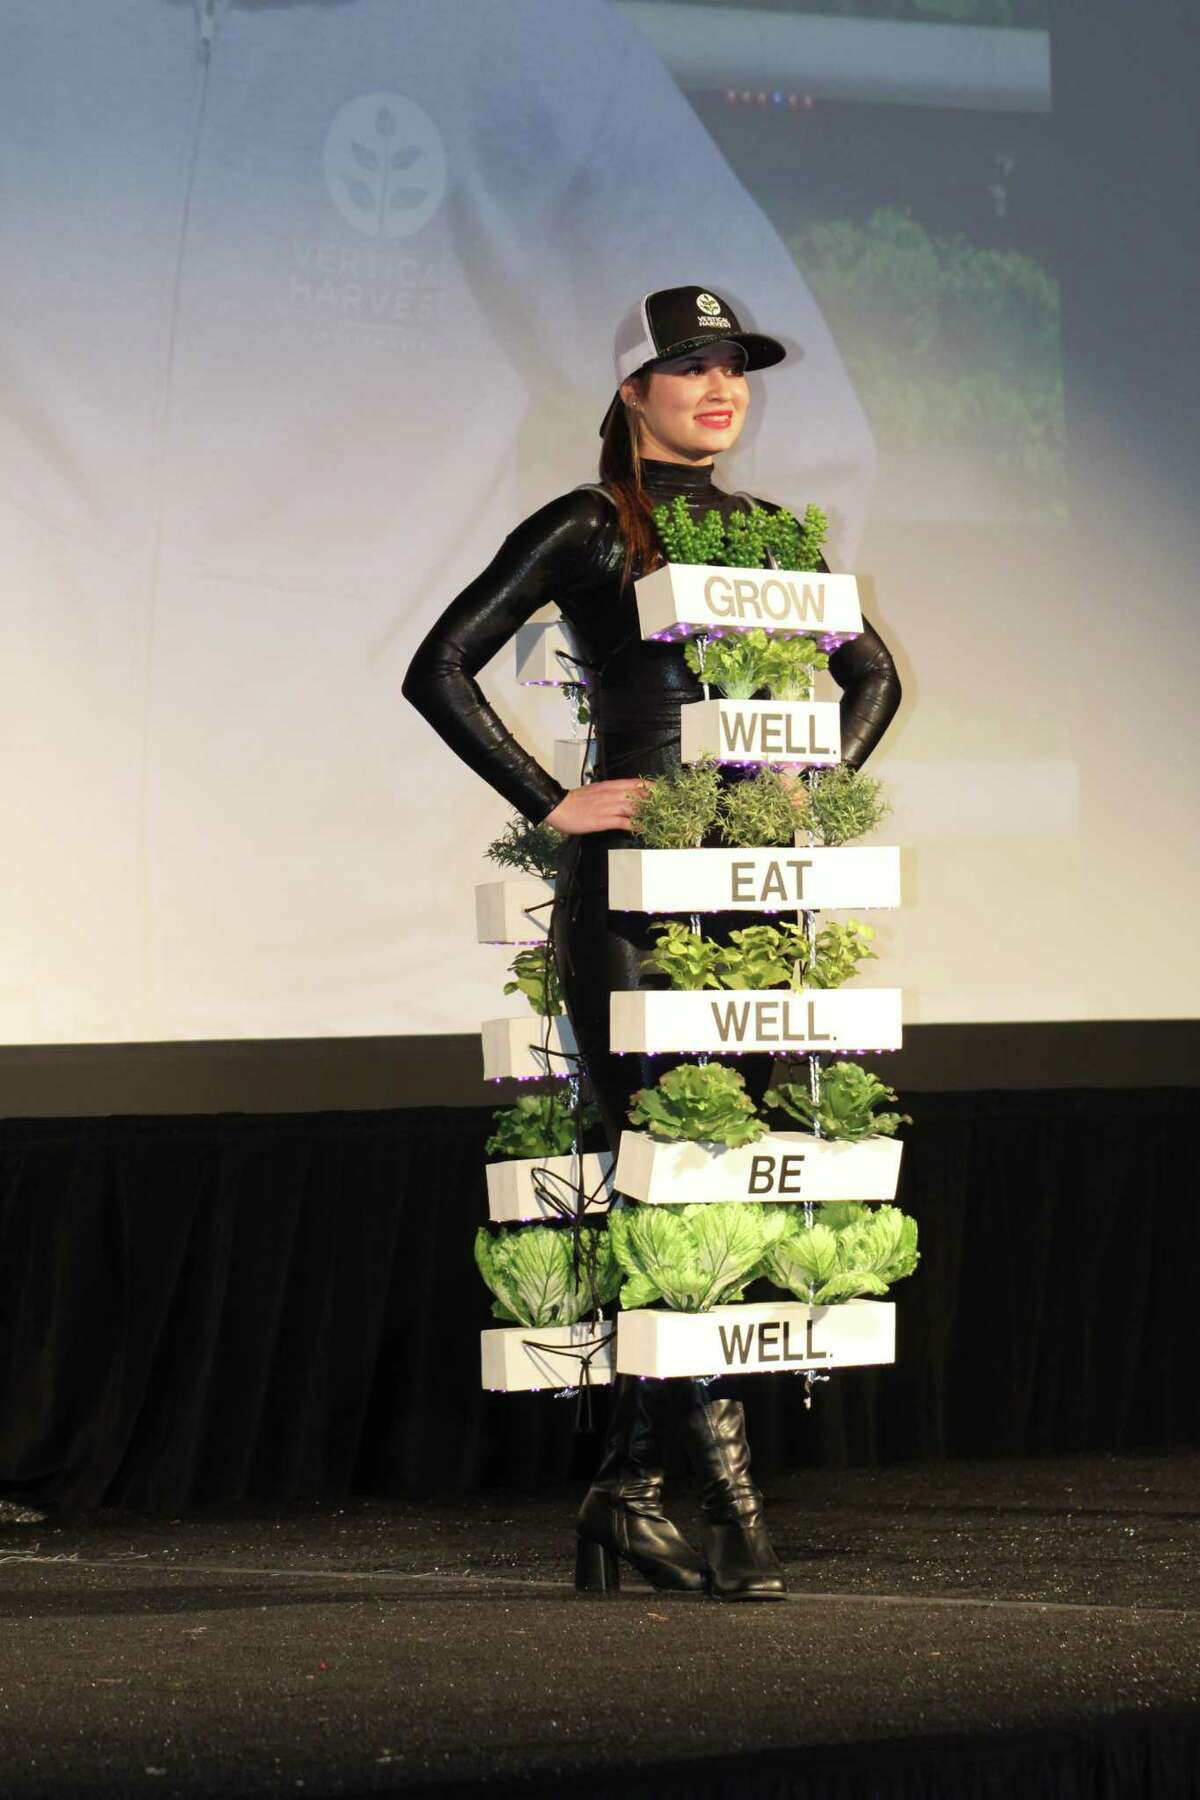 The fourth annual Inspire Film Festival kicked off on Thursday night, Feb. 13, with the usual fashion show, which features homemade dresses that represent each of the films being shown at the festival. Here, Izzy Ferber models a dress that includes living vegetables and lettuce, representing the documentary film